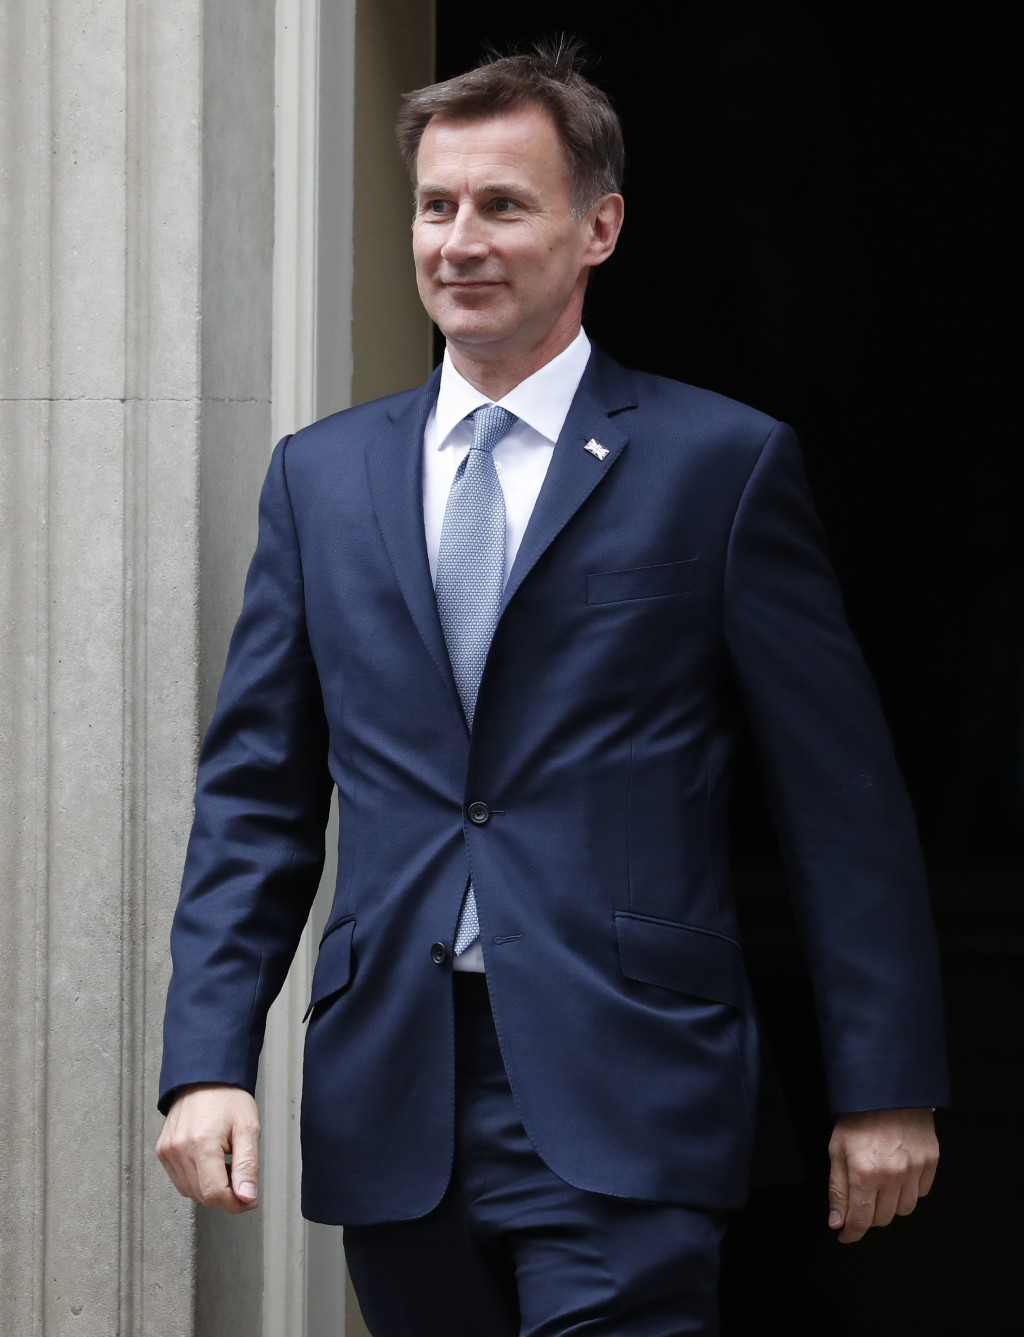 Jeremy Hunt Britain's Secretary of State for Foreign and Commonwealth Affairs leaves 10 Downing Street following a cabinet meeting in London, Tuesday,